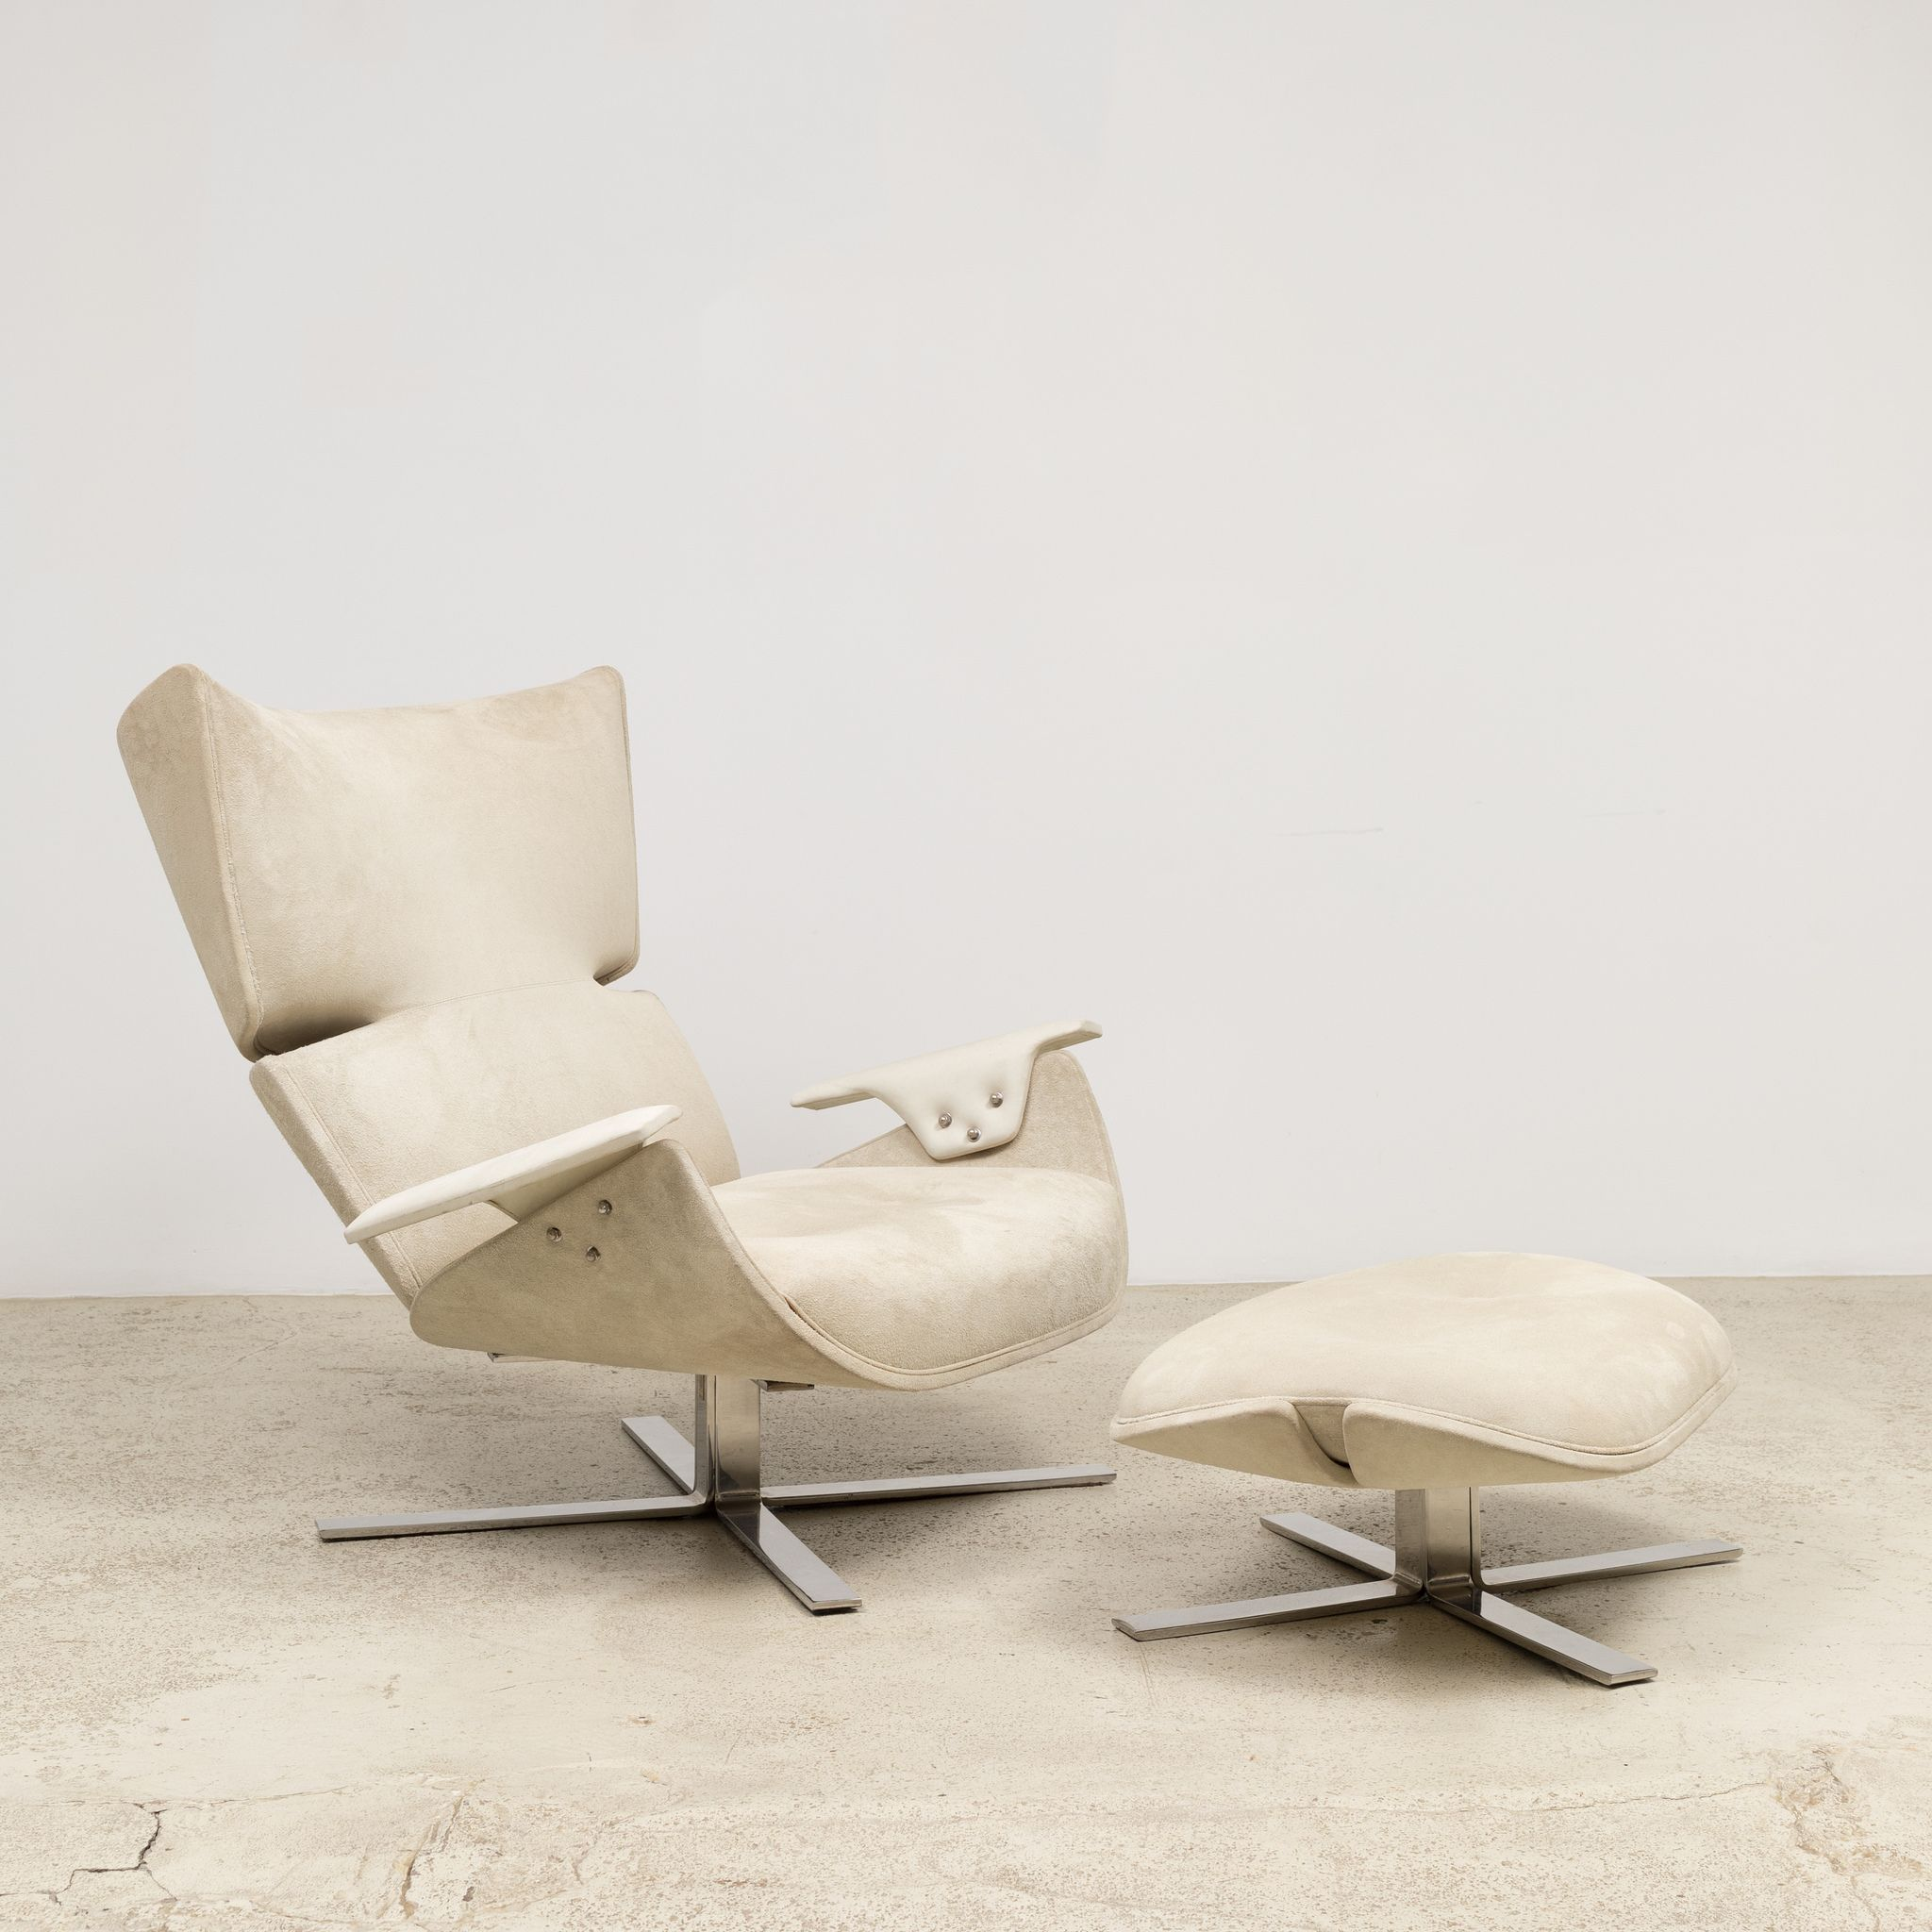 Paulistana Armchair And Ottoman By Jorge Zalszupin Available At - Lobster-and-shelly-lounge-chairs-by-oluf-lund-and-eva-paarmann